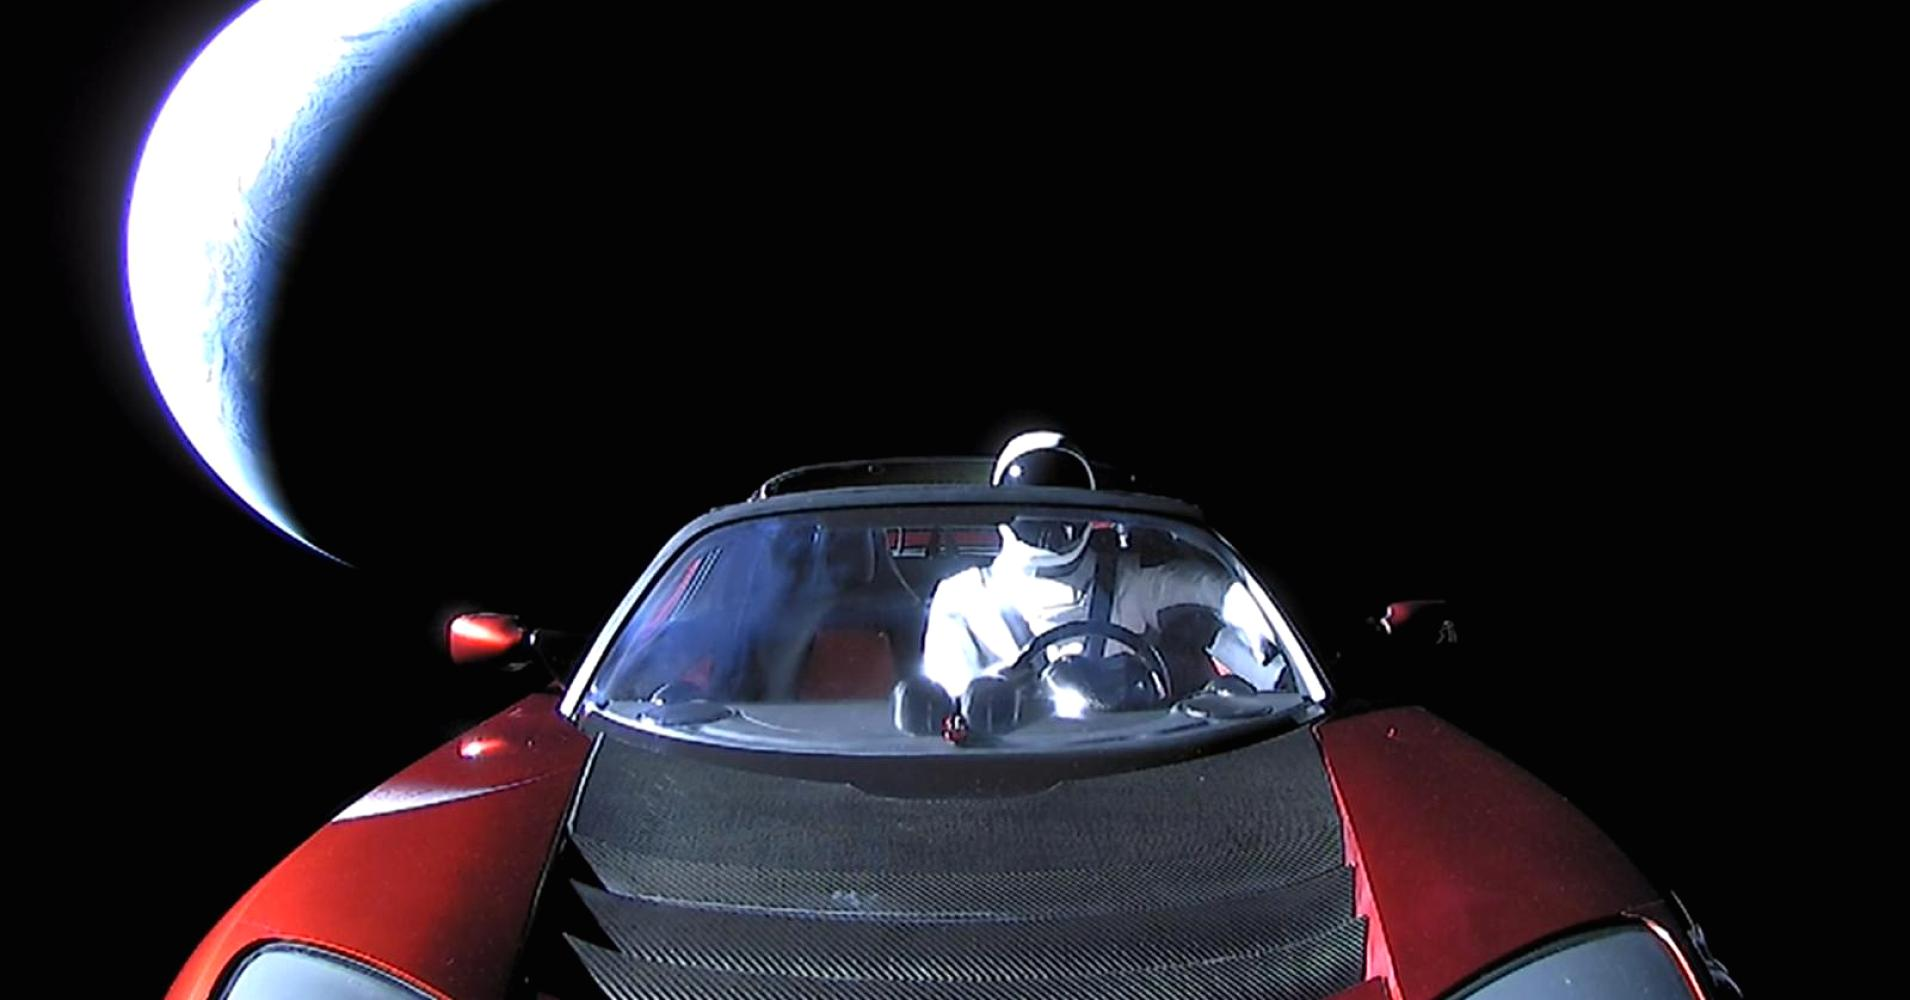 SpaceX, or was it Tesla, pulled off the biggest and best content marketing play of the month. Possibly, the biggest and best of the year. Heck, maybe of all time.